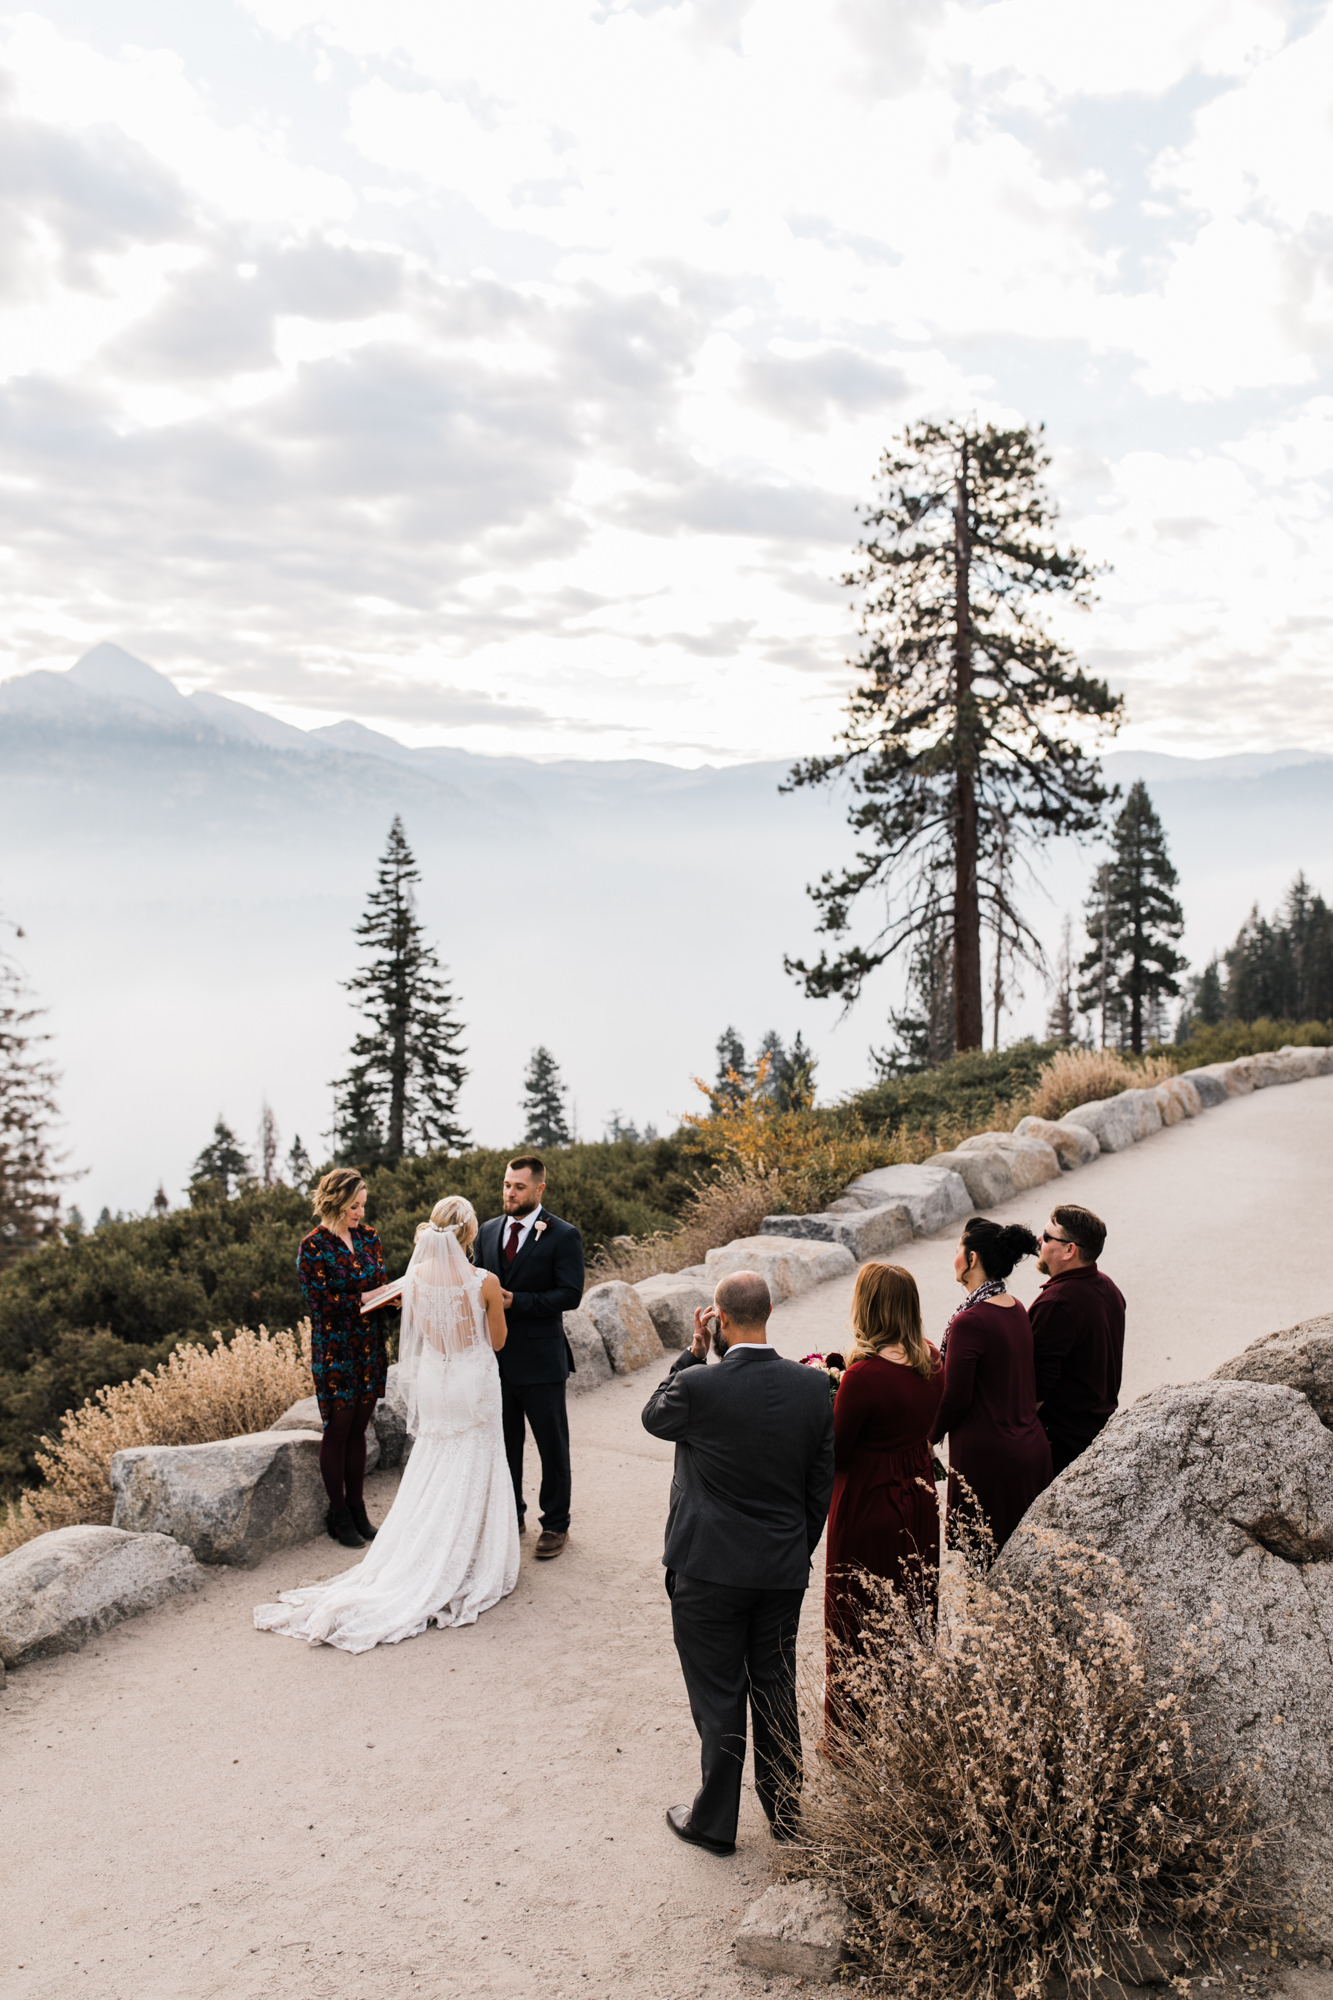 intimate wedding at glacier point | yosemite national park | destination wedding photographer | the hearnes adventure photography | www.thehearnes.com